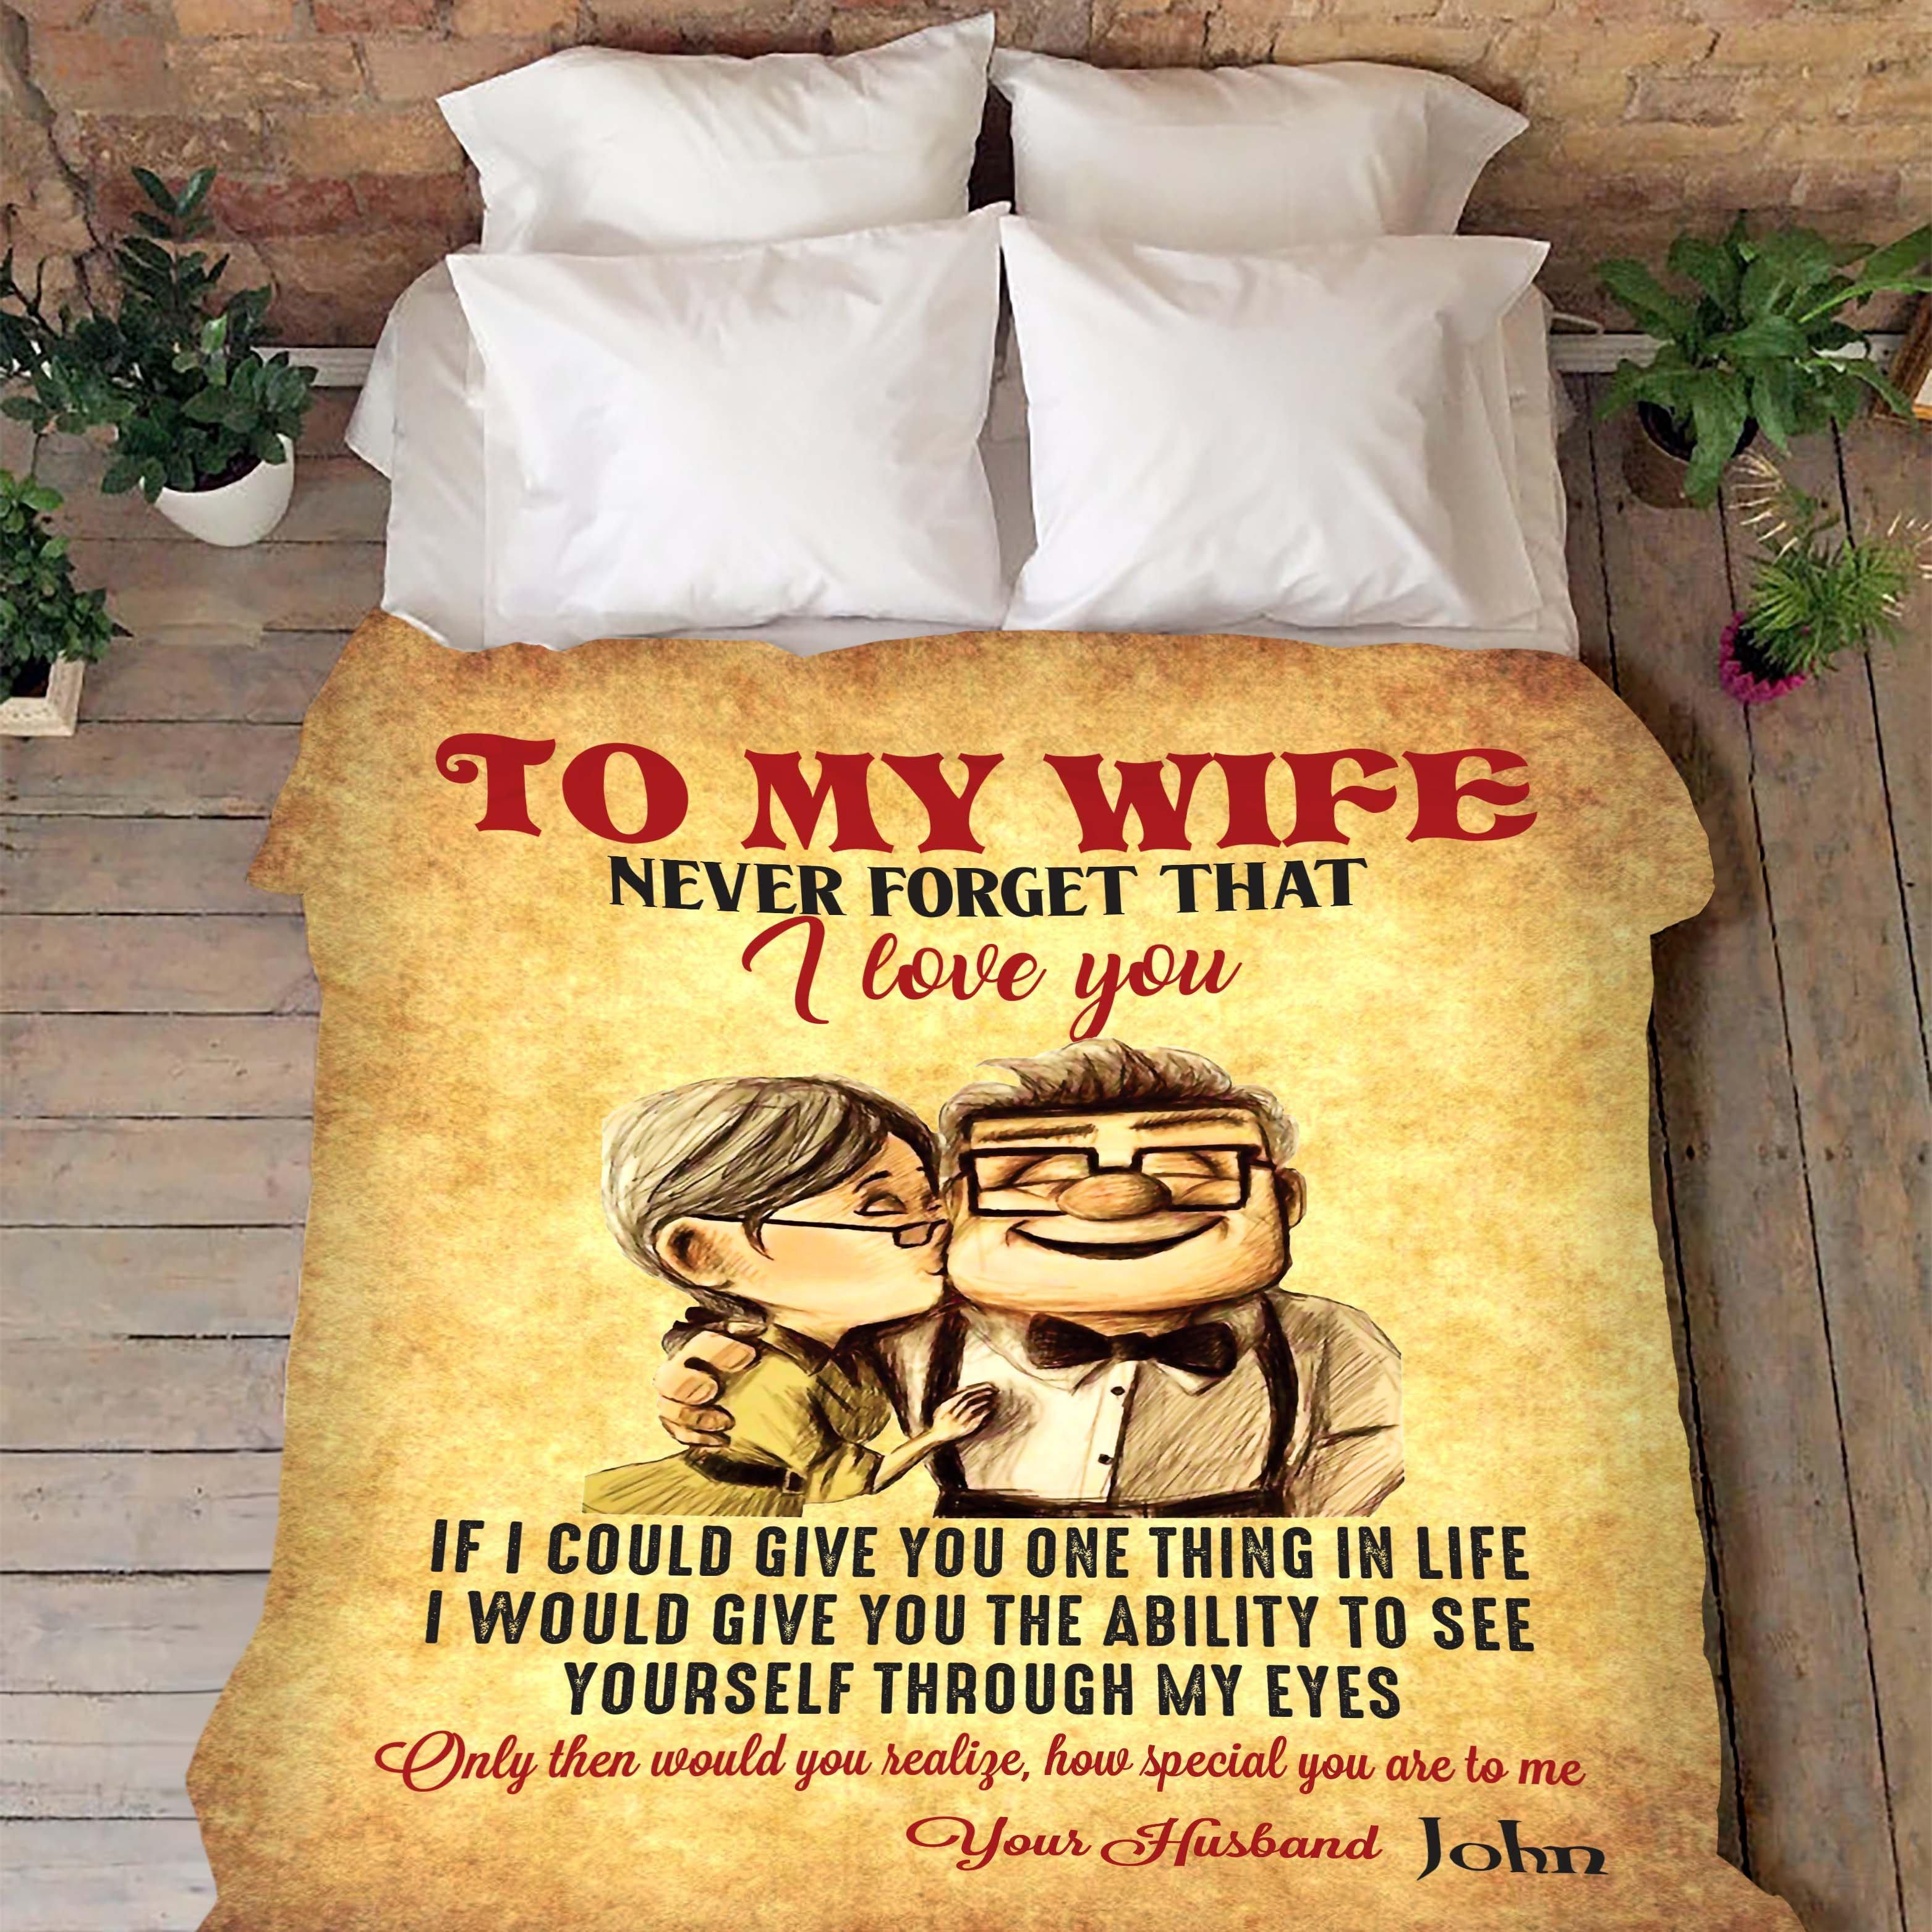 Up movie to my wife never forget that I love you blanket - size 60x80